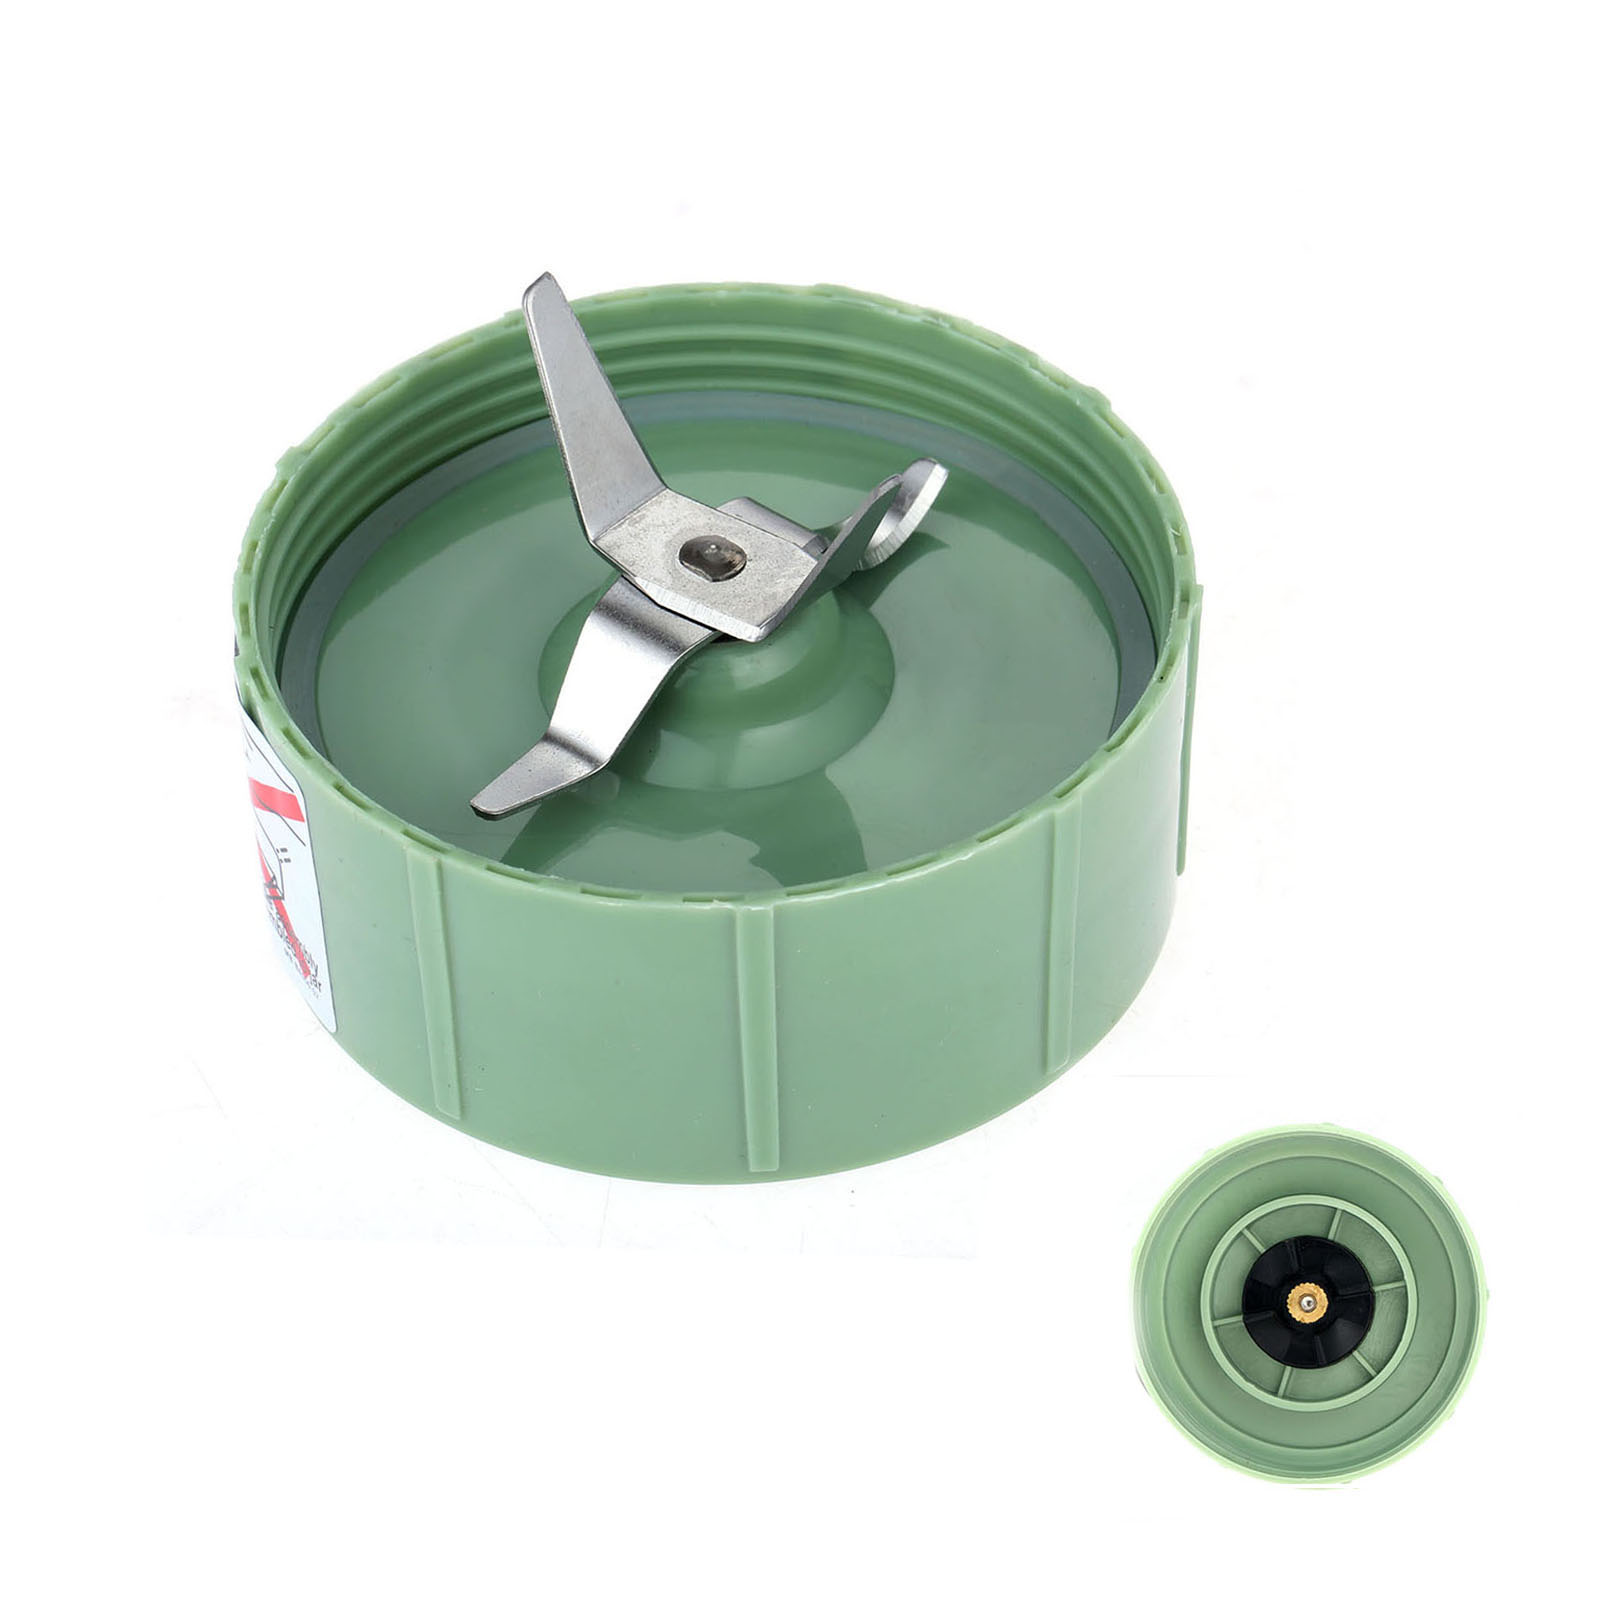 Repalcement 250W Extractor For Baby Bullet Cross Blade Blender Juicer Parts